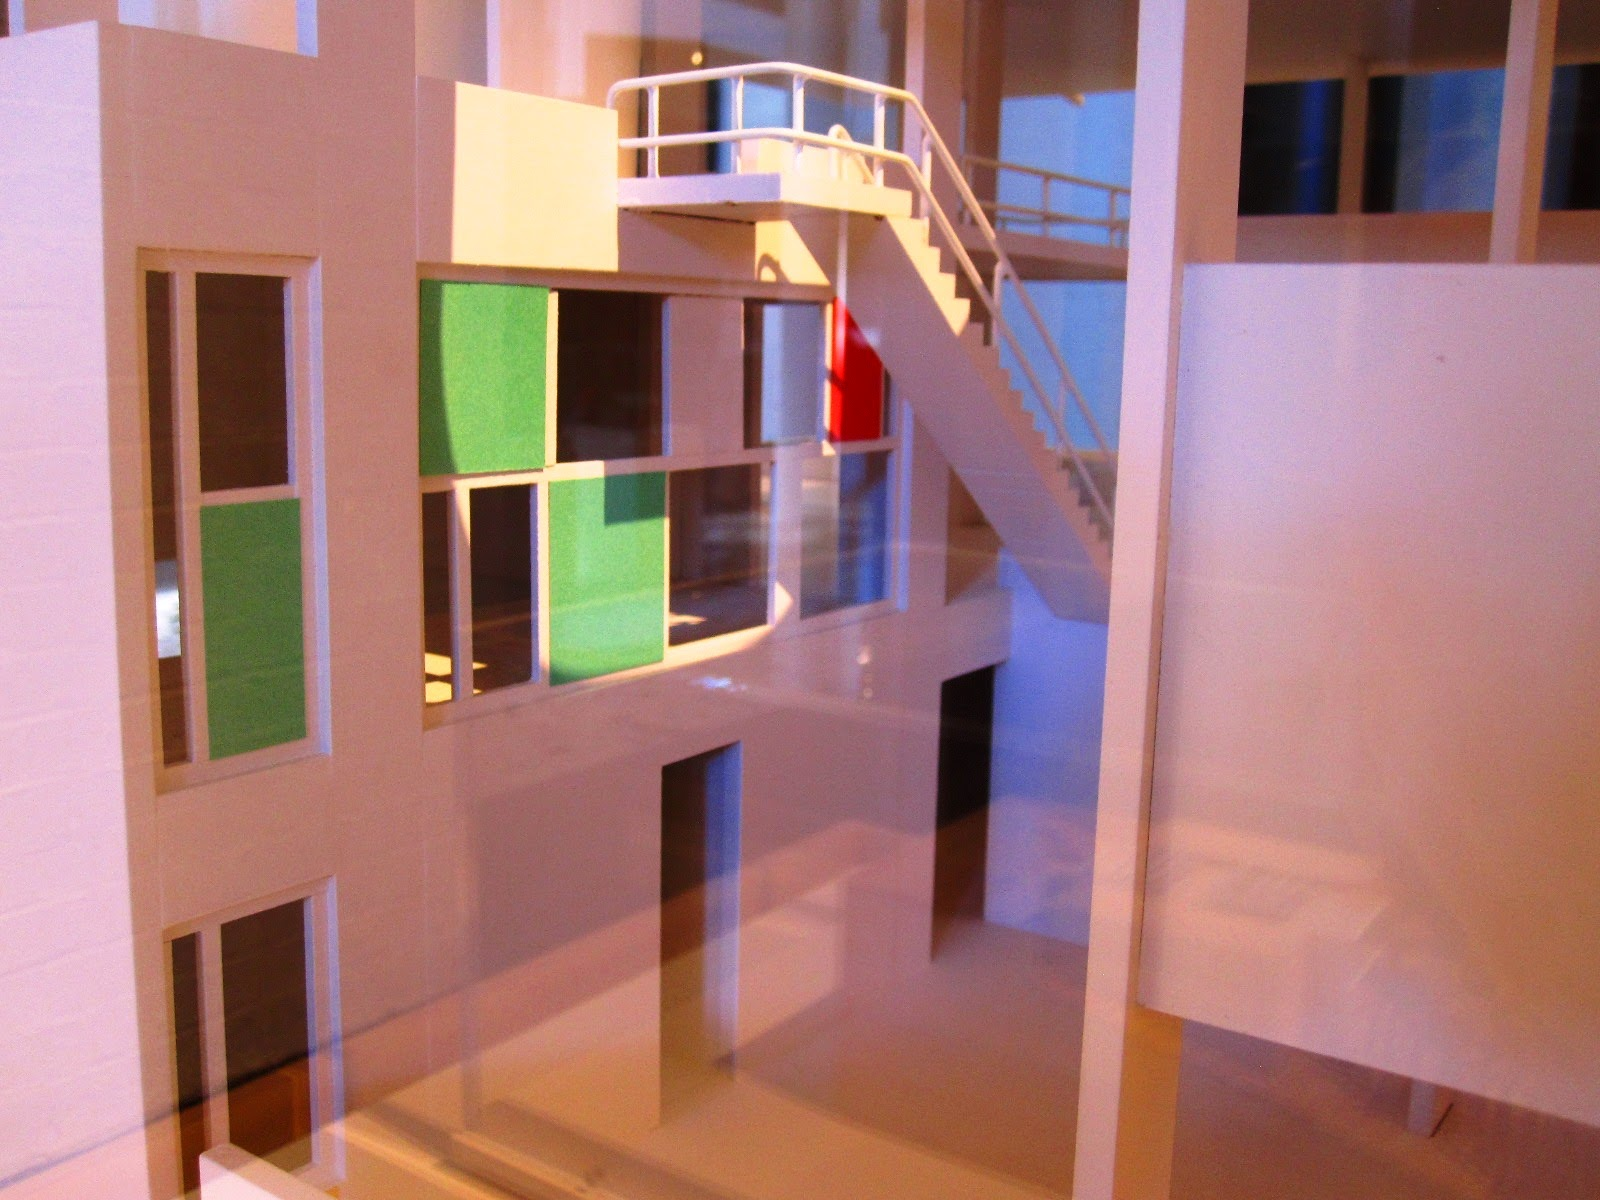 Architectural model of Le Corbusier's Villa Shodham.